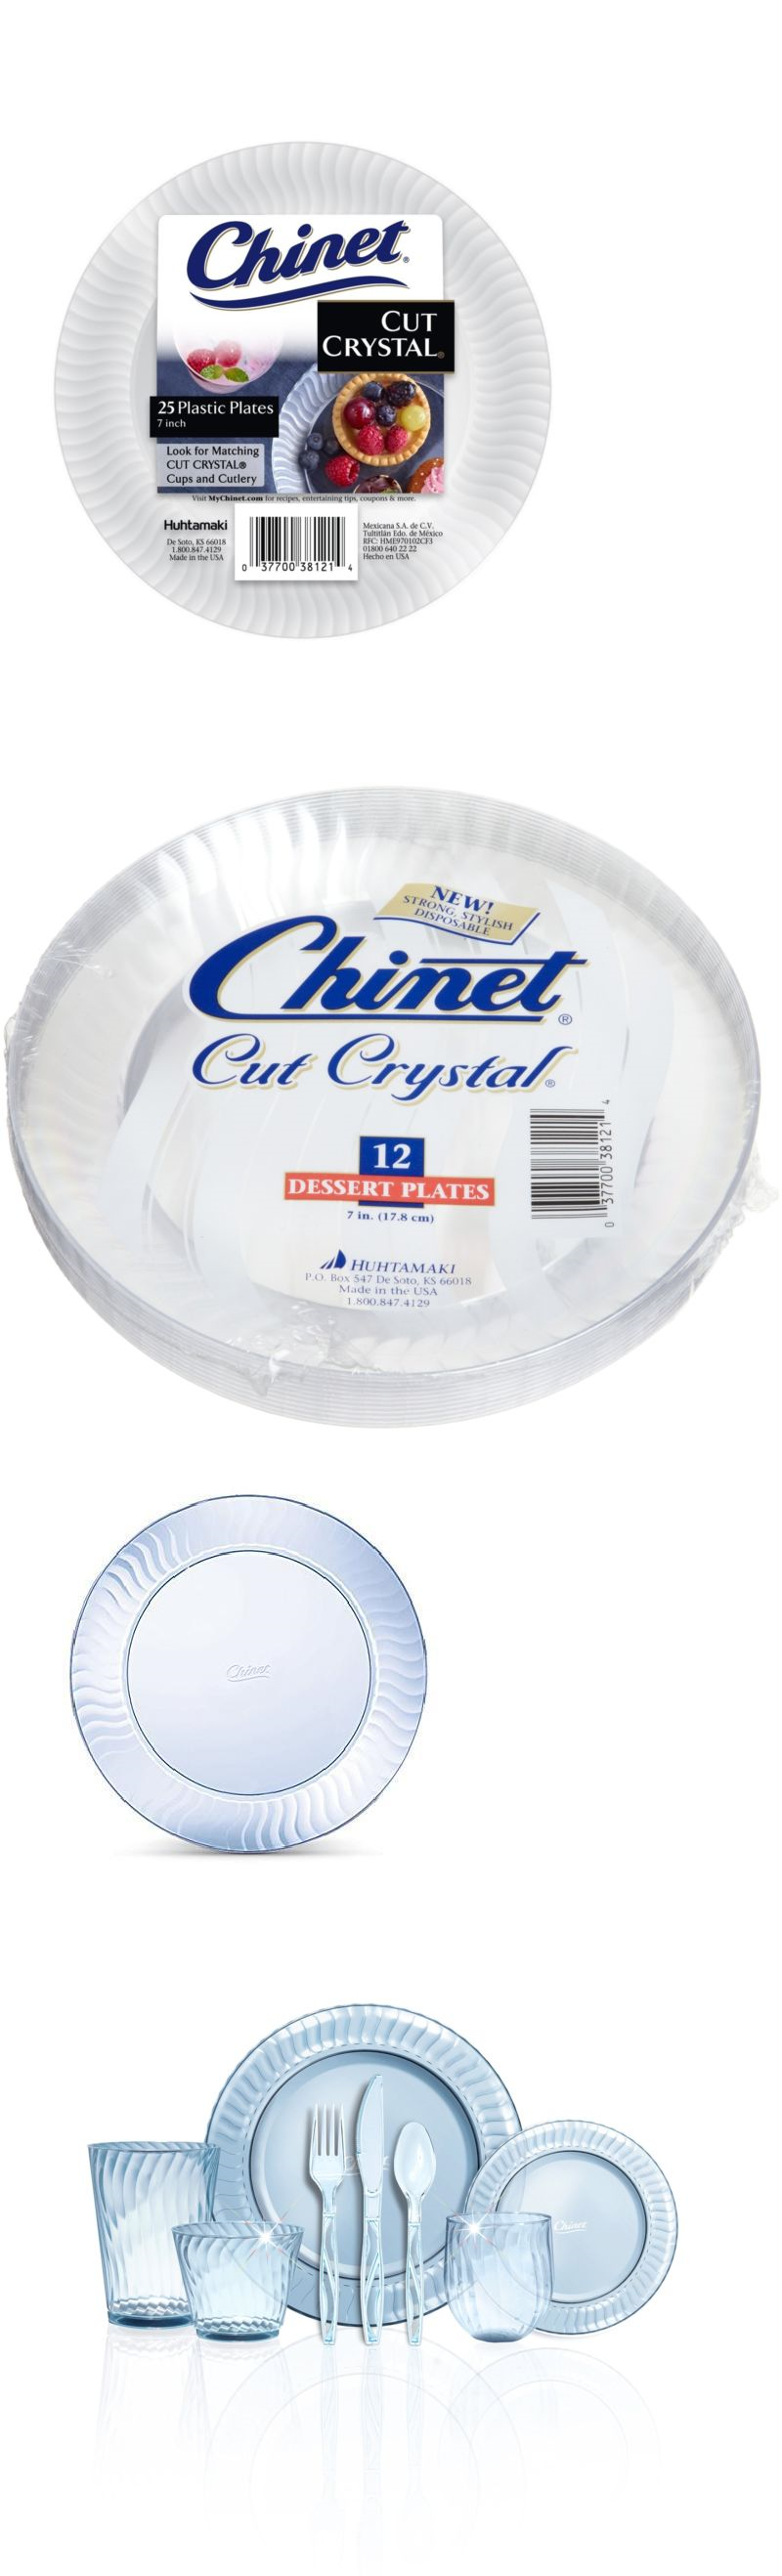 Captivating Chinet Cut Crystal Plates 7 Inch Pictures - Best Image ...